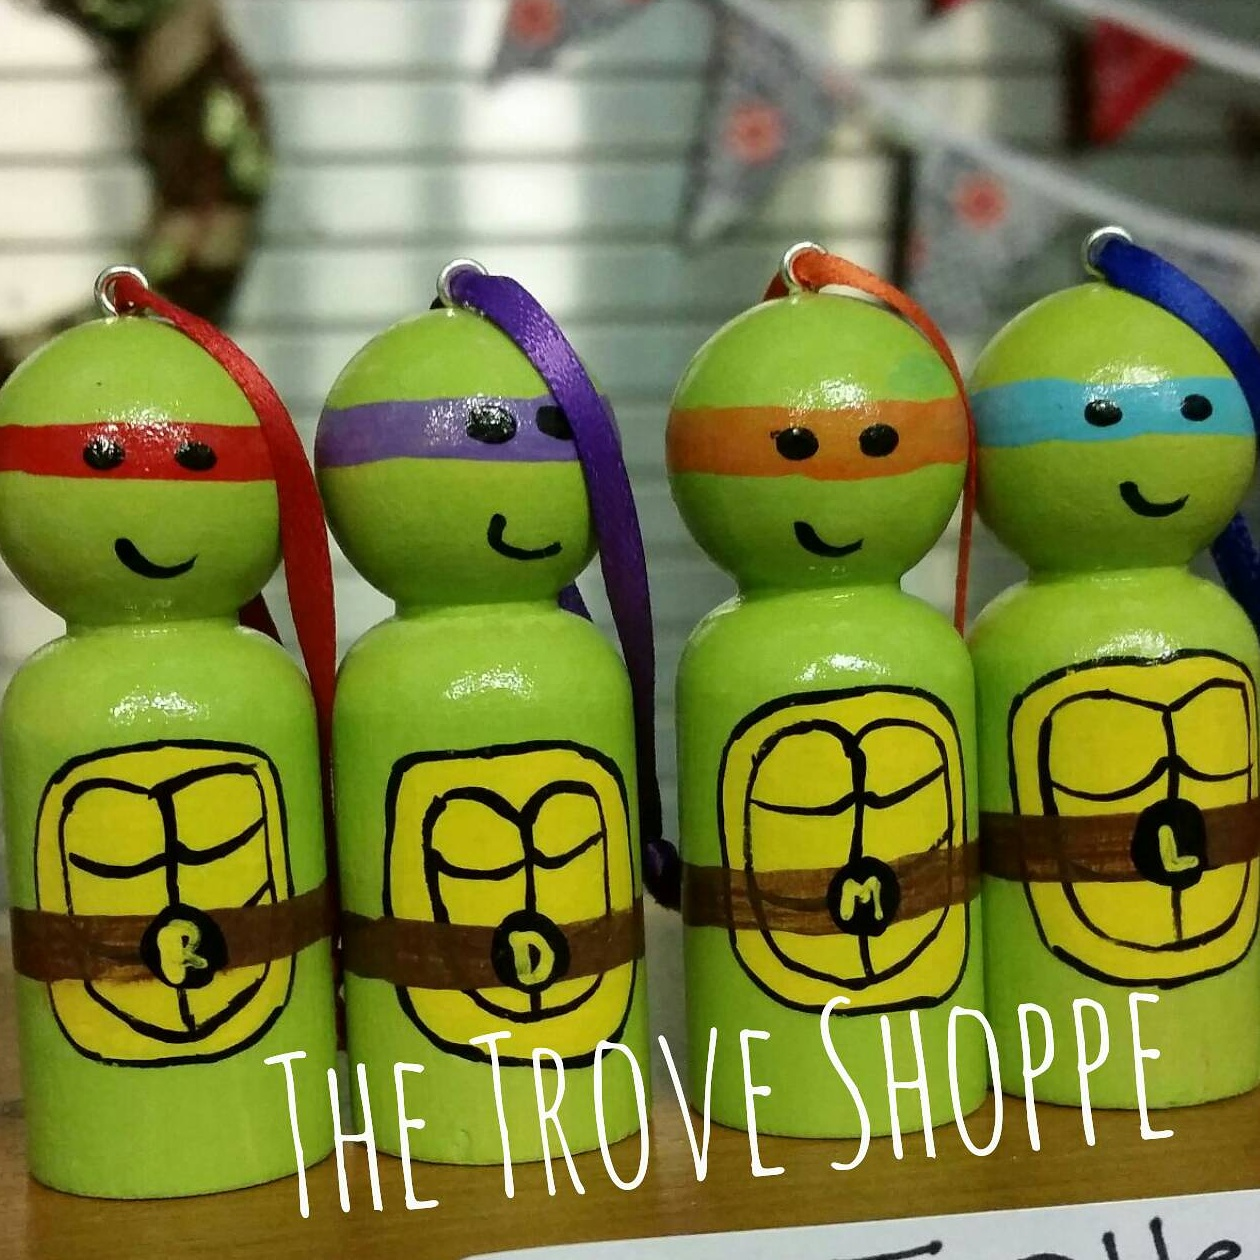 ninja turtle chair toys r us wedding covers hire oxfordshire hand painted peg doll ornaments set of 4